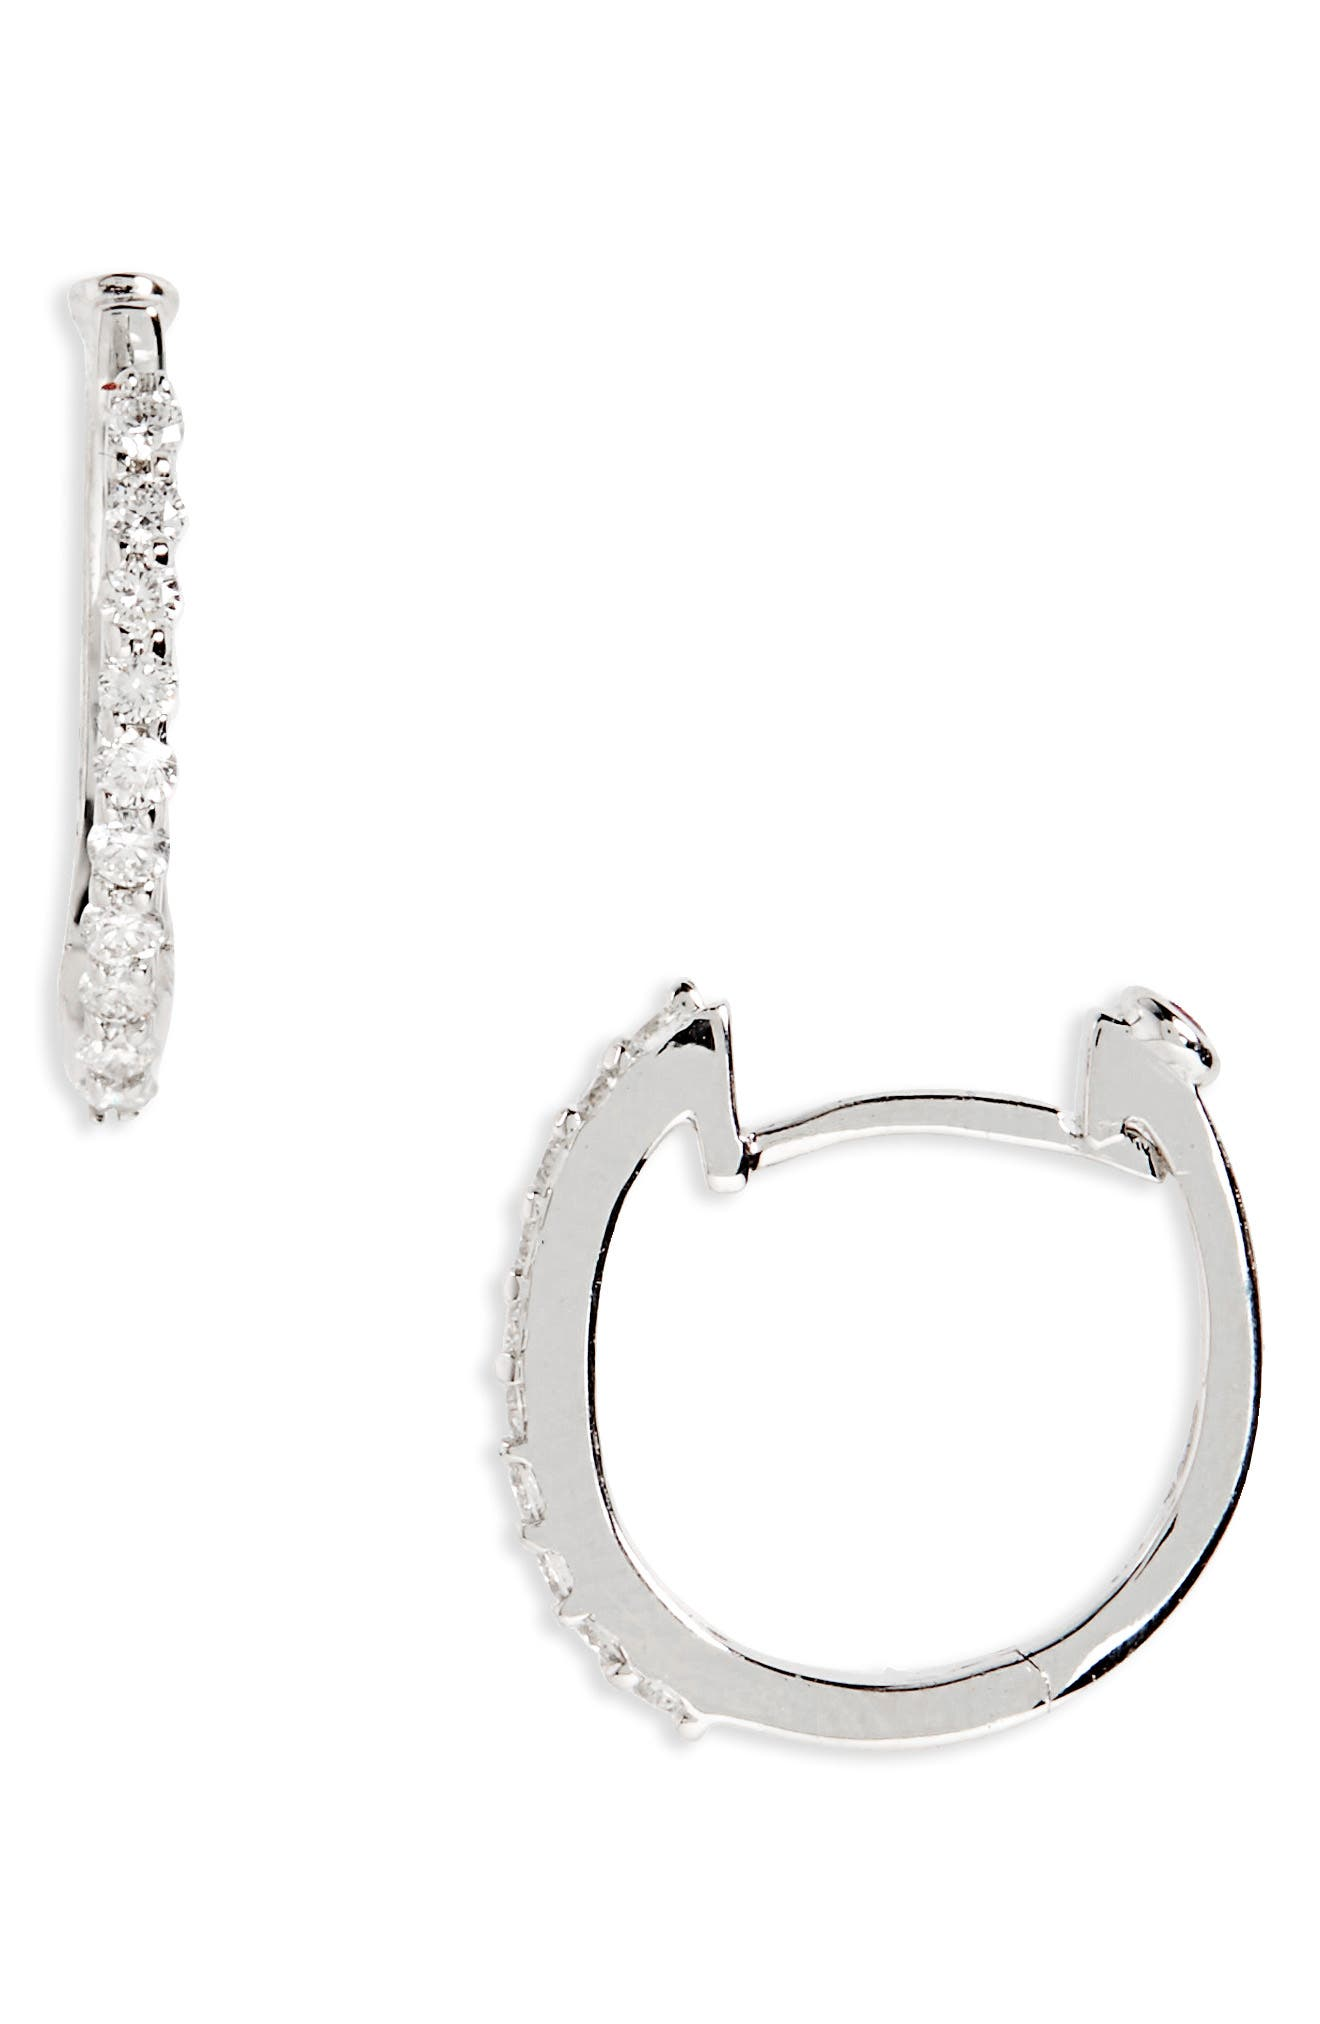 Small Diamond Hoop Earrings,                             Alternate thumbnail 2, color,                             711